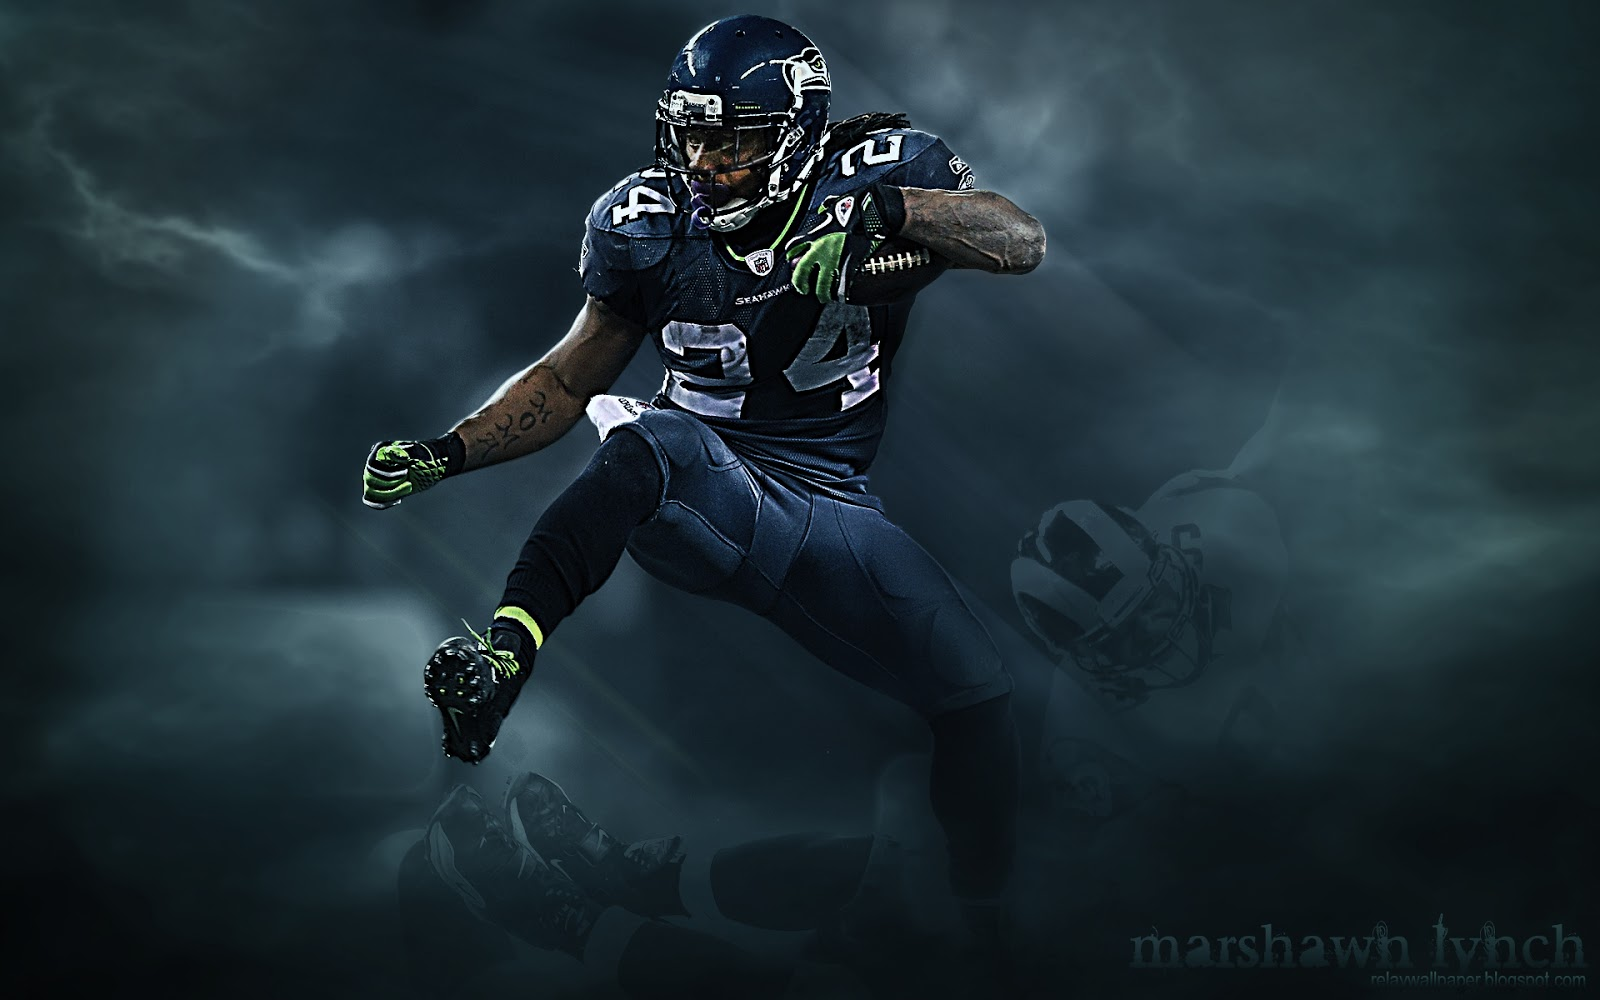 Best 43 Marshawn Lynch Desktop Background on HipWallpaper 1600x1000